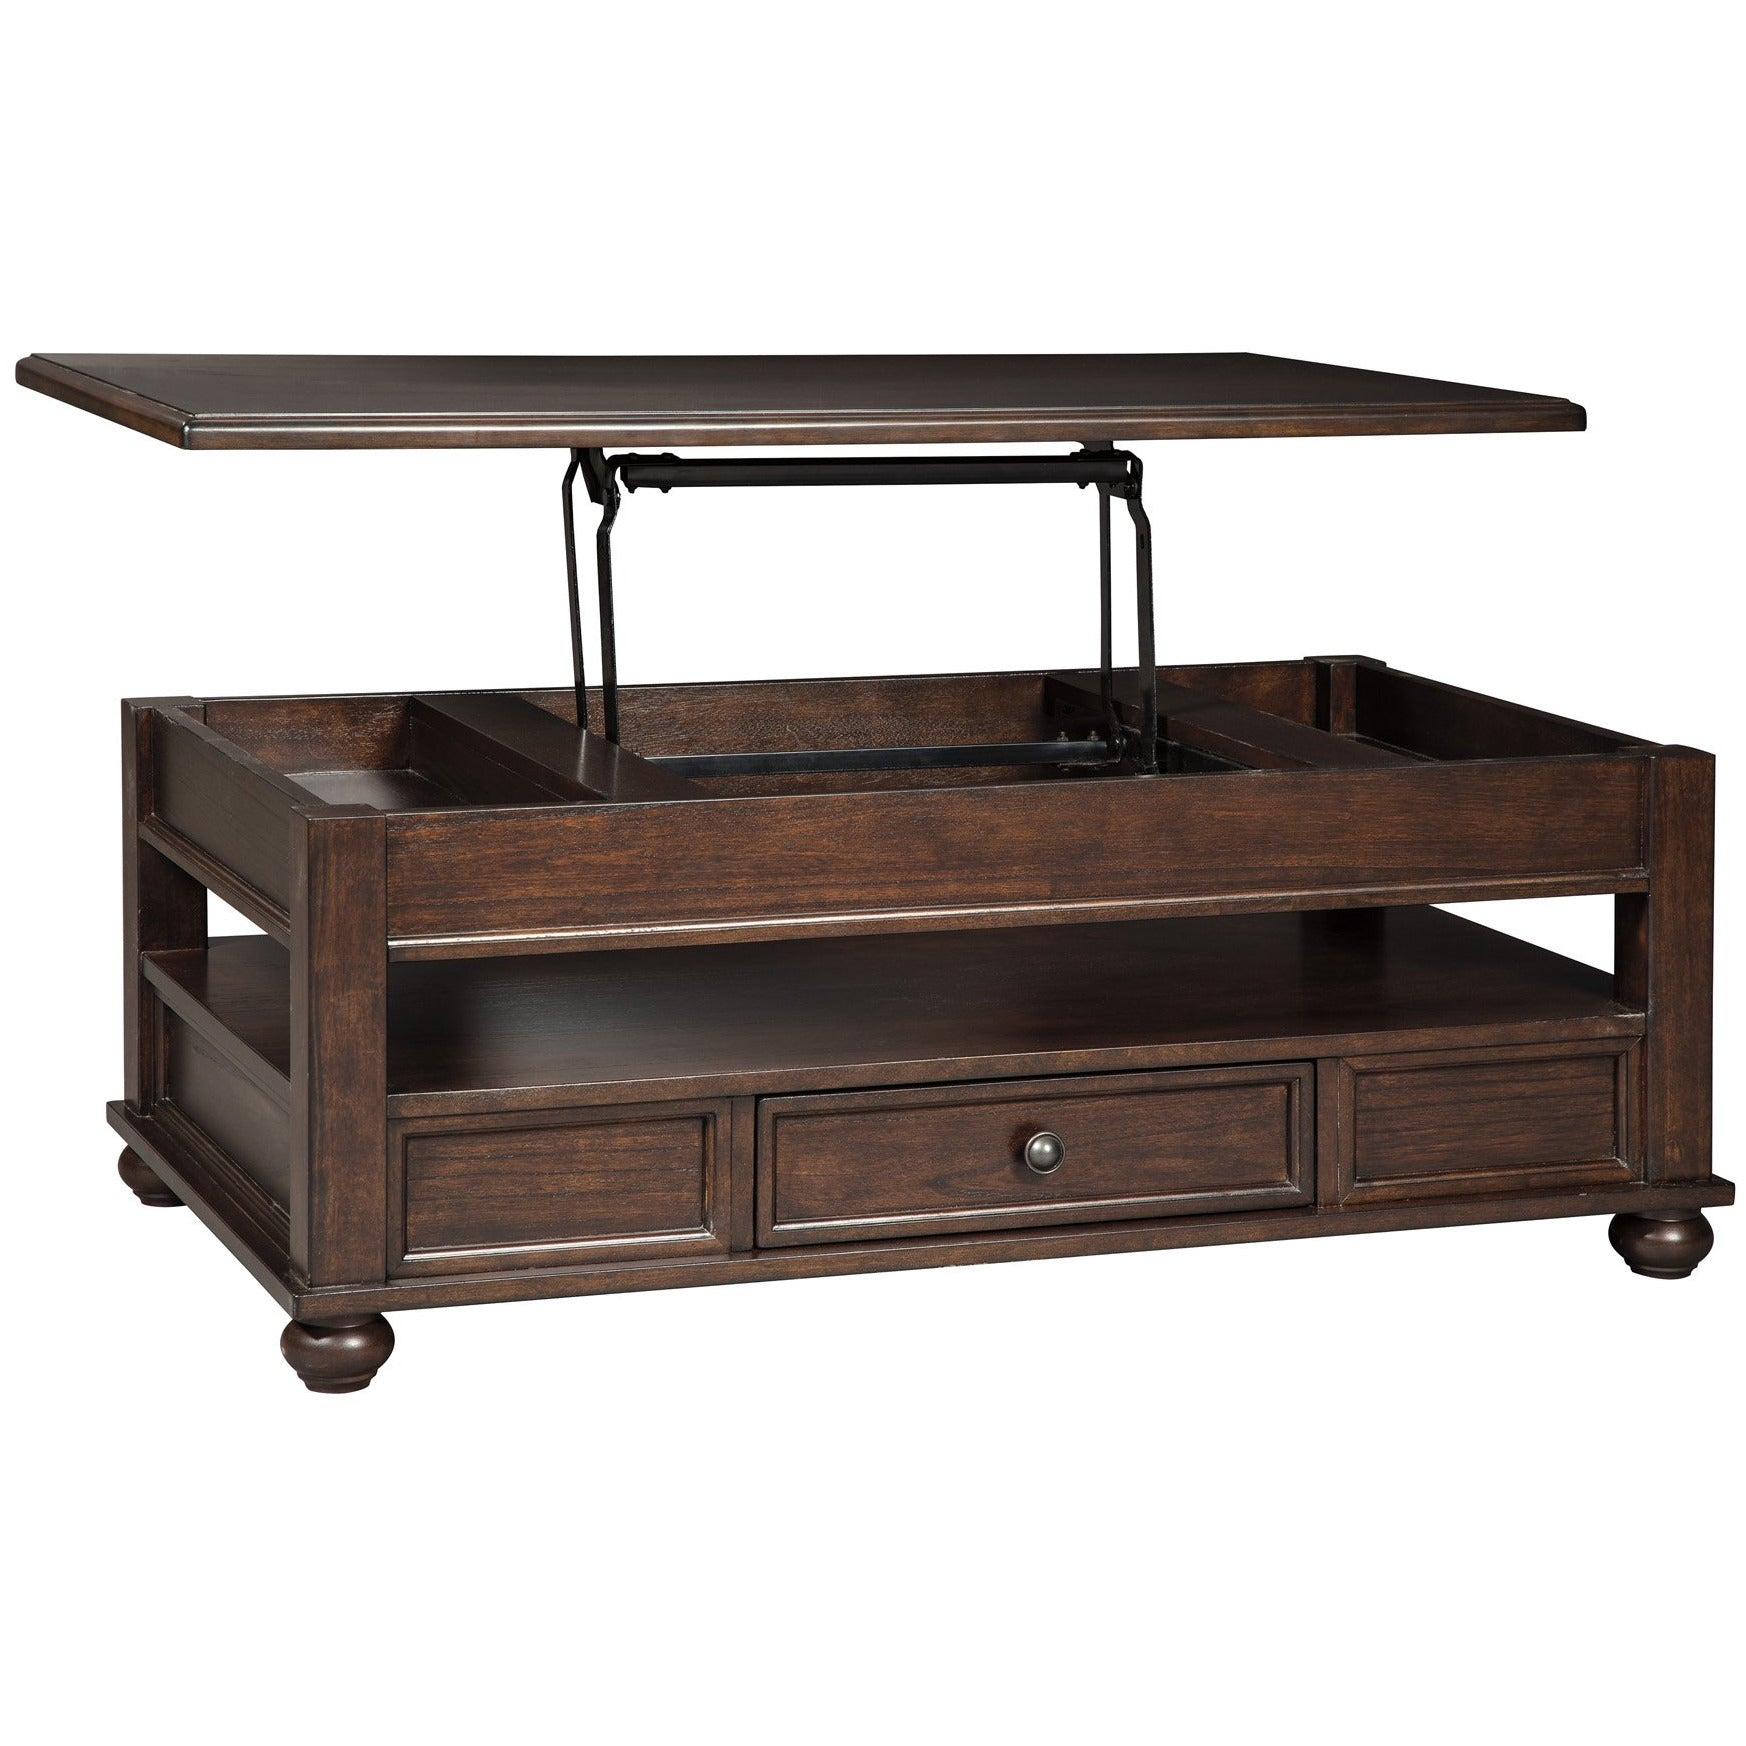 Barilanni Lift-Top Cocktail Table